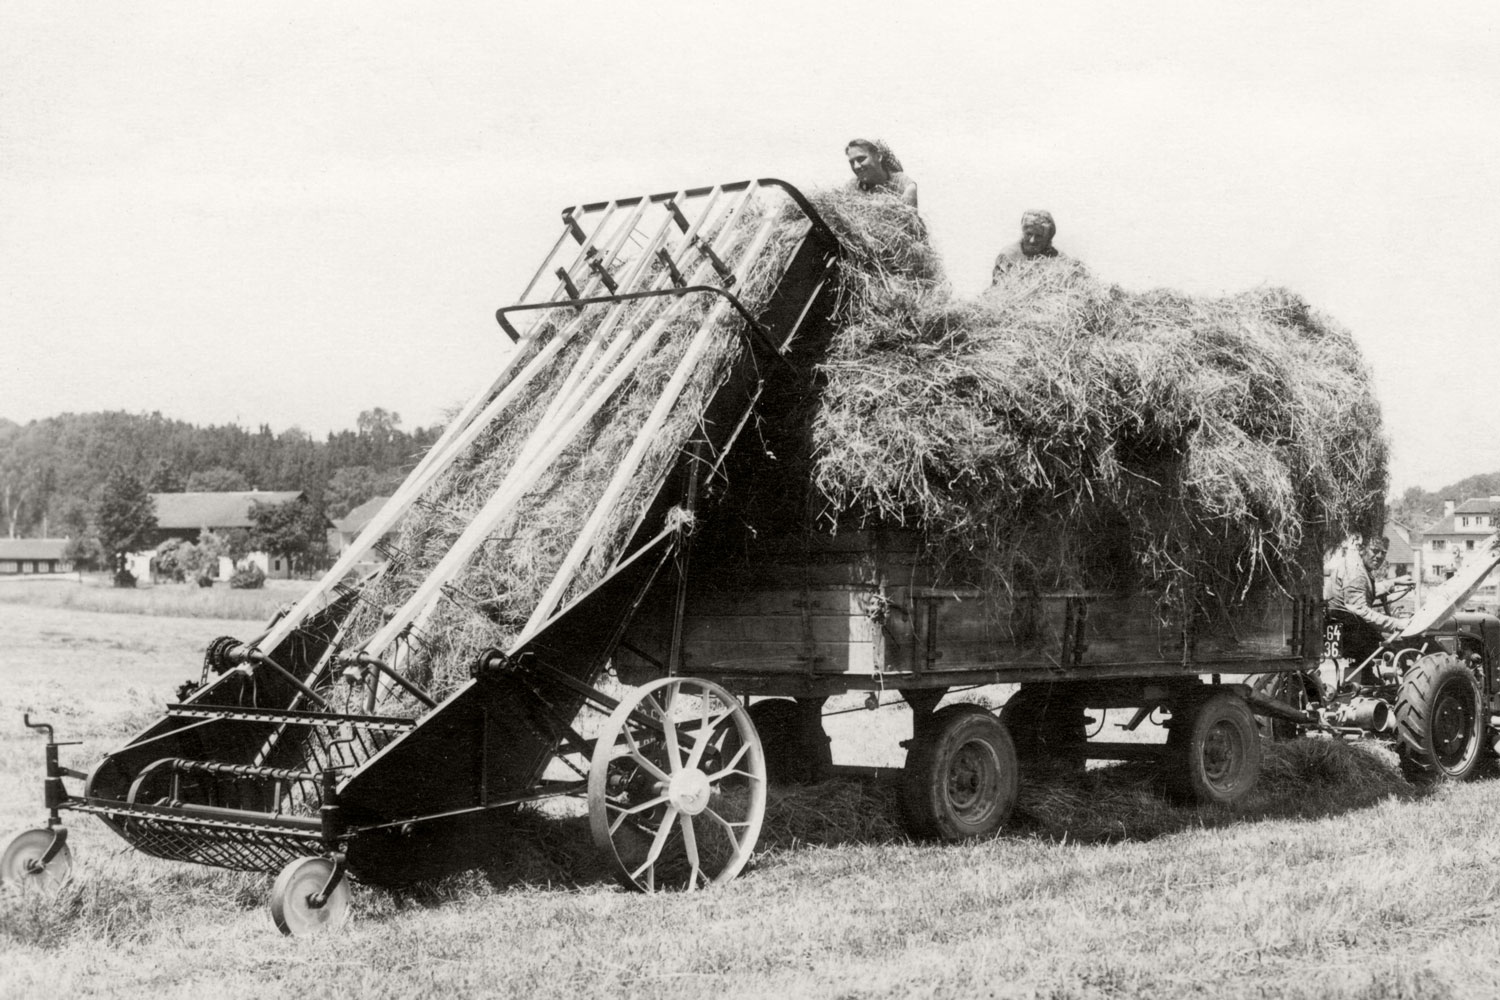 1951: The hay harvest has never been so quick and easy as with the hay loader from Grieskirchen.